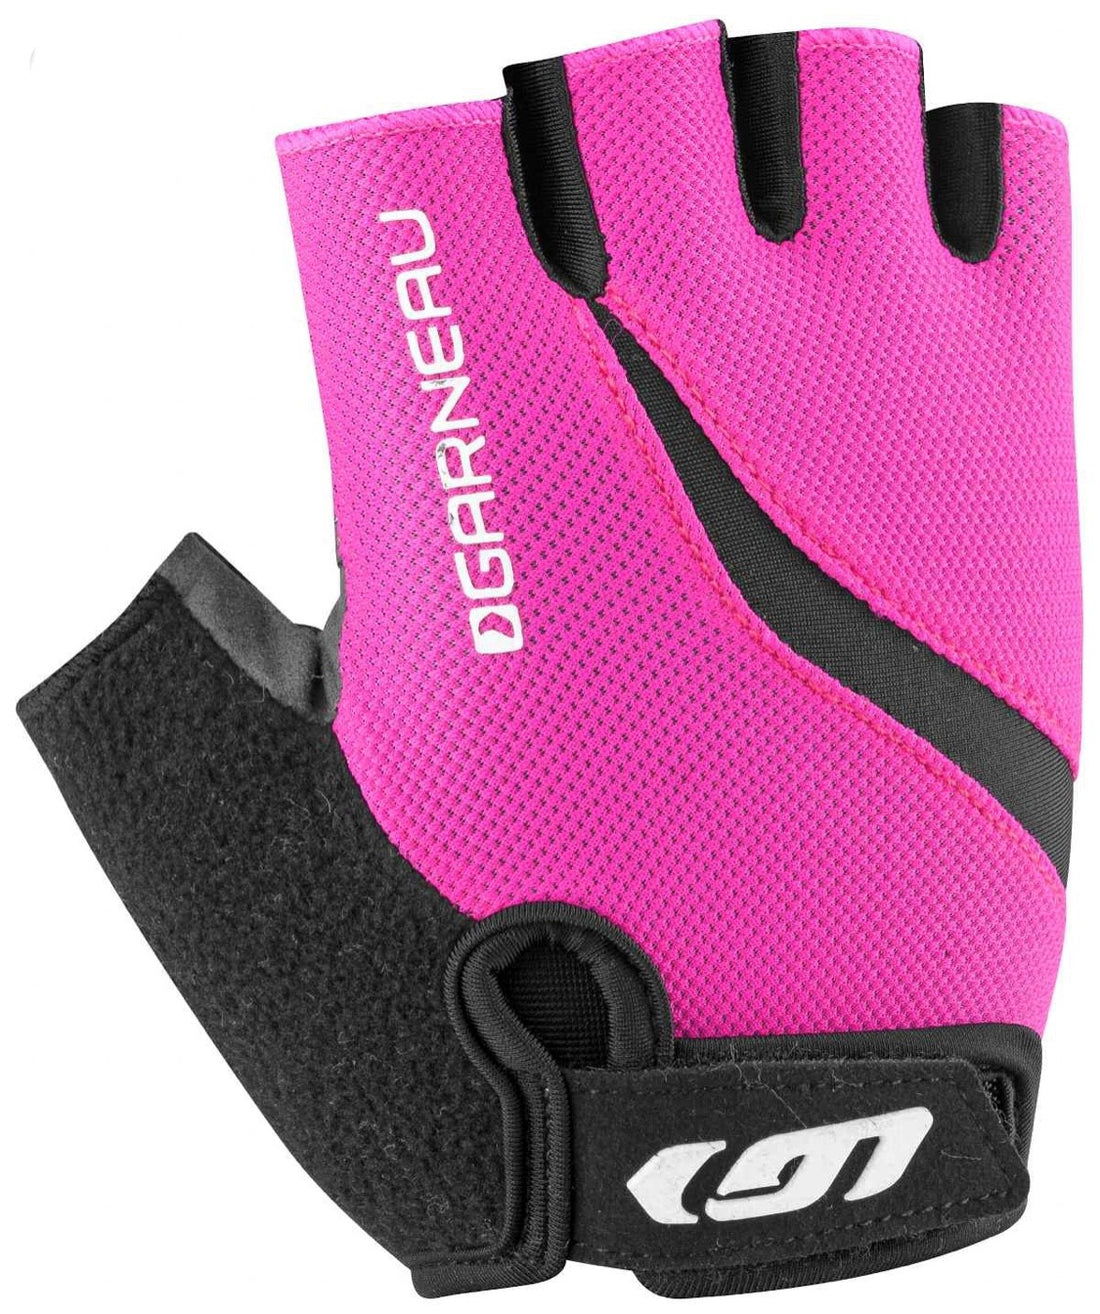 BIOGEL RX-V Cycling Gloves Women's Pink Small